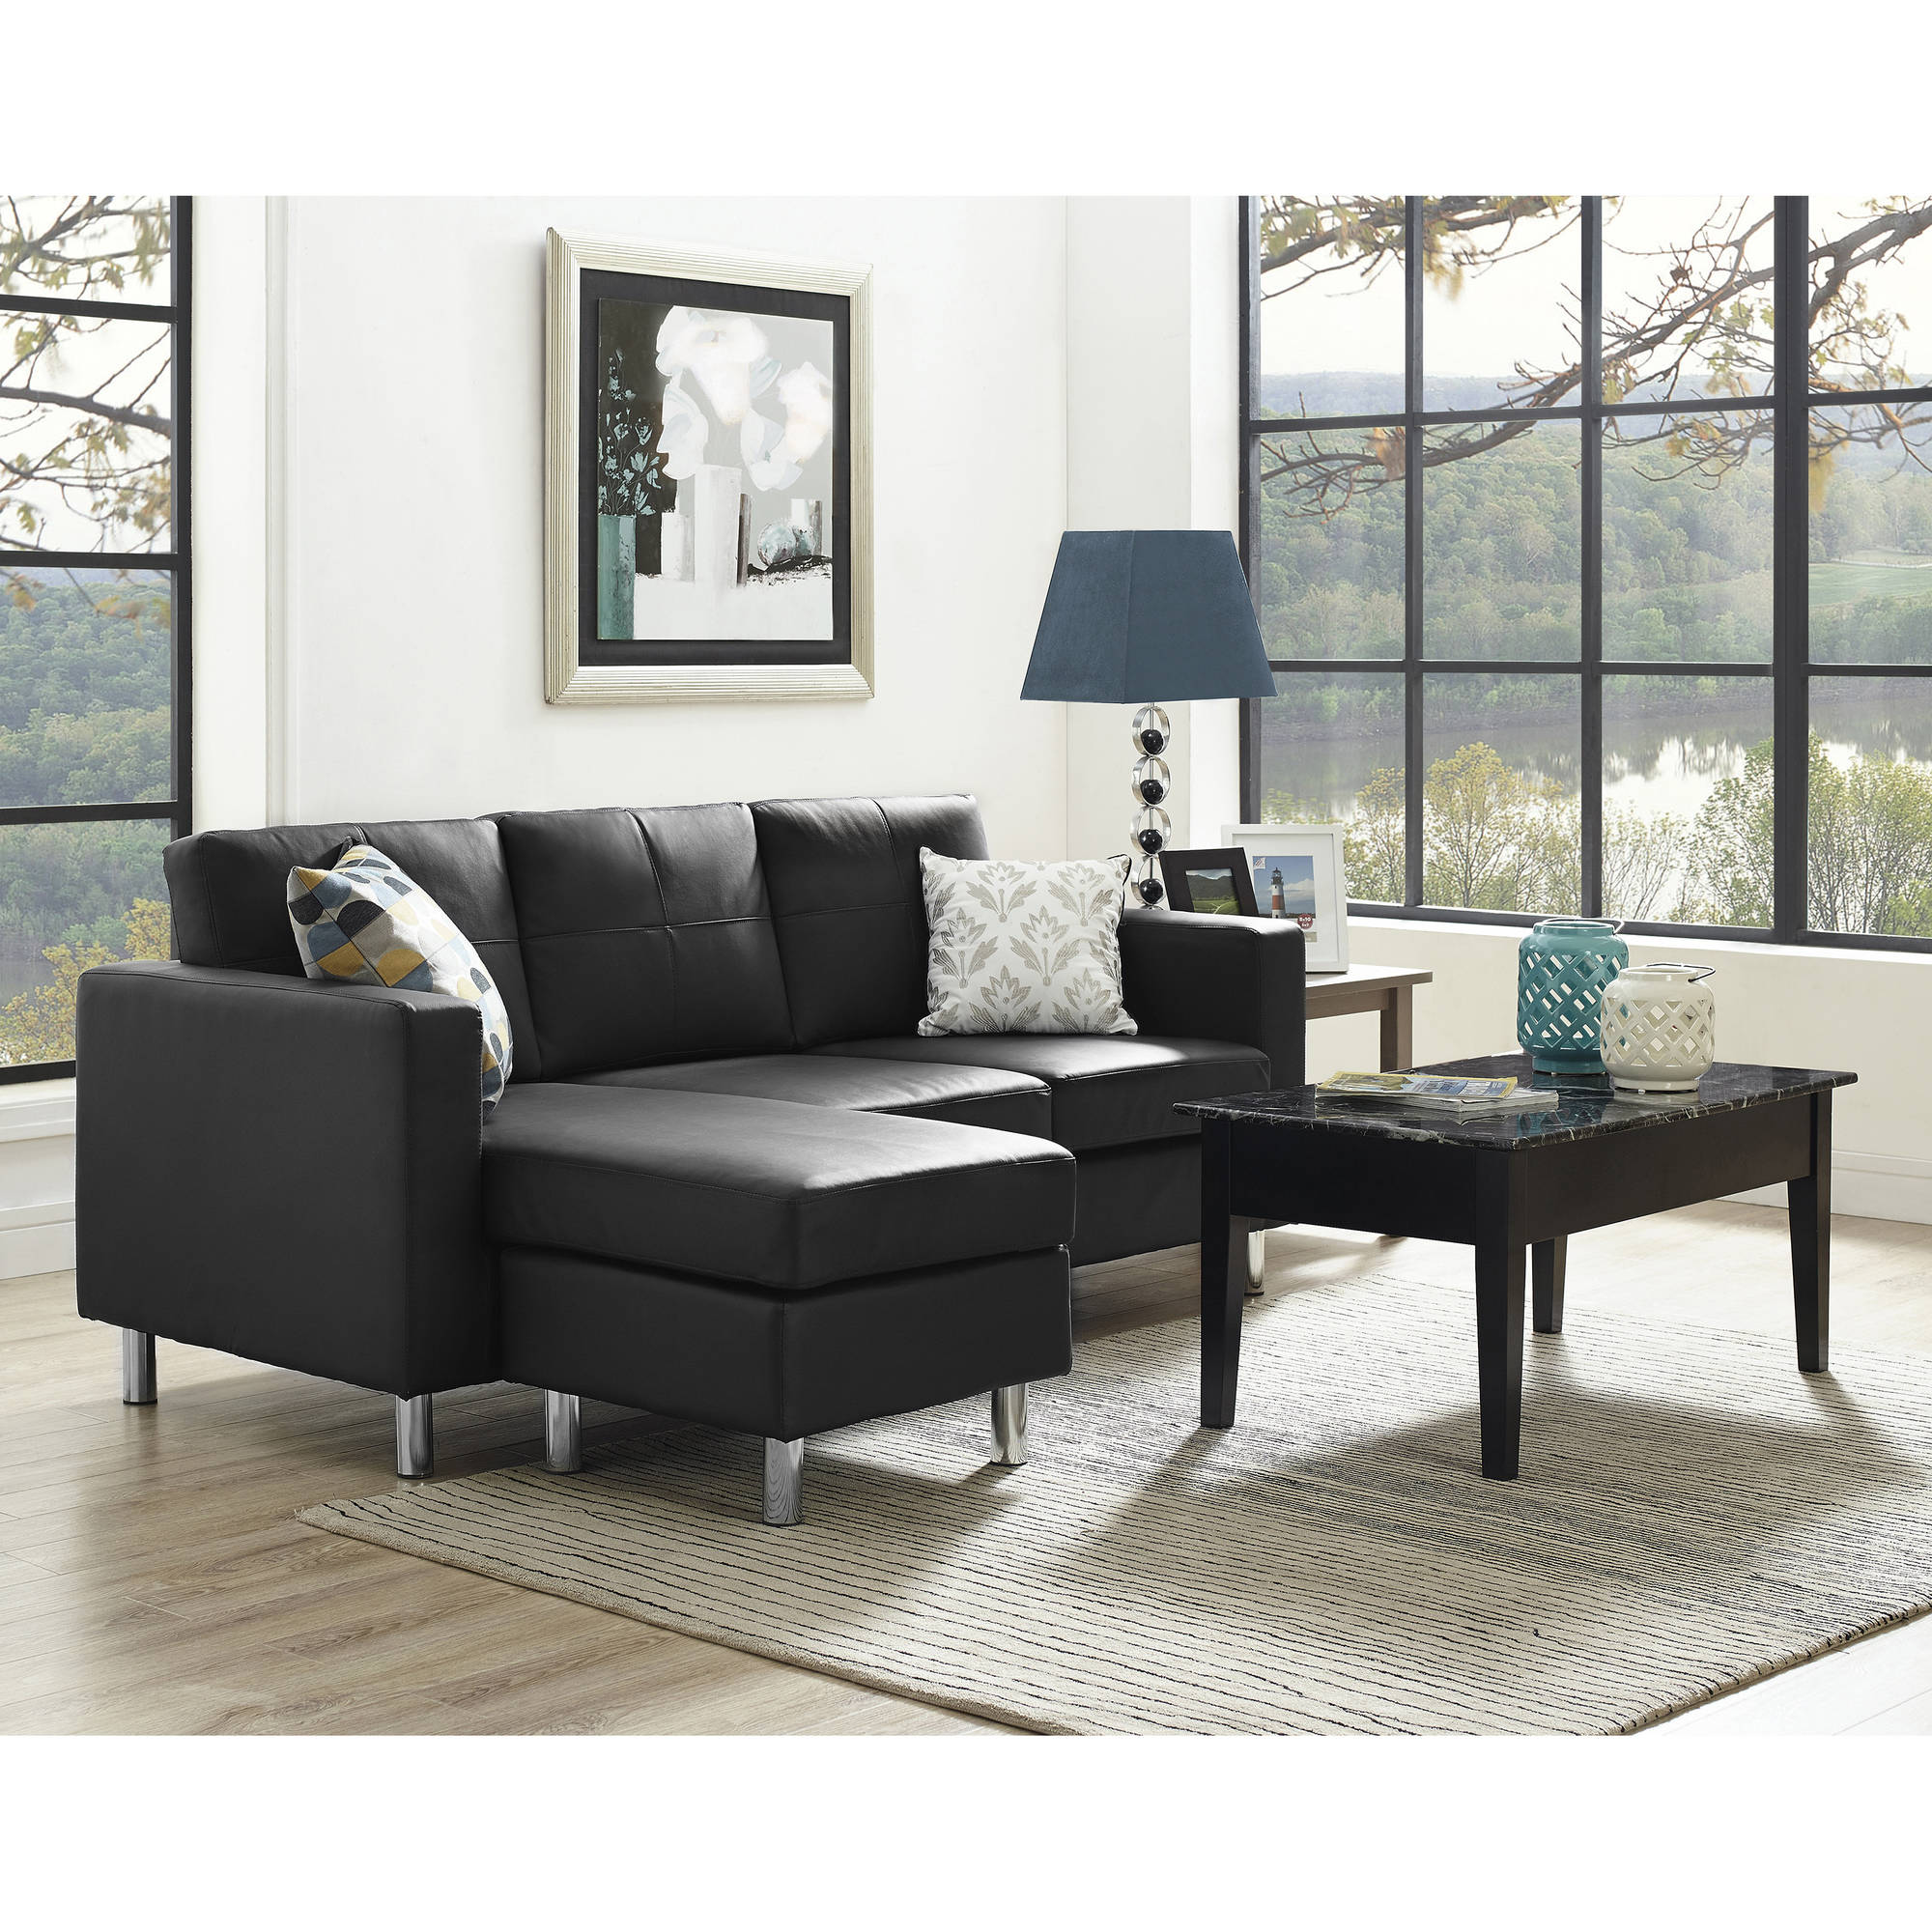 Sectionals In Living Rooms Dorel Living Small Spaces Configurable Sectional Sofa Multiple